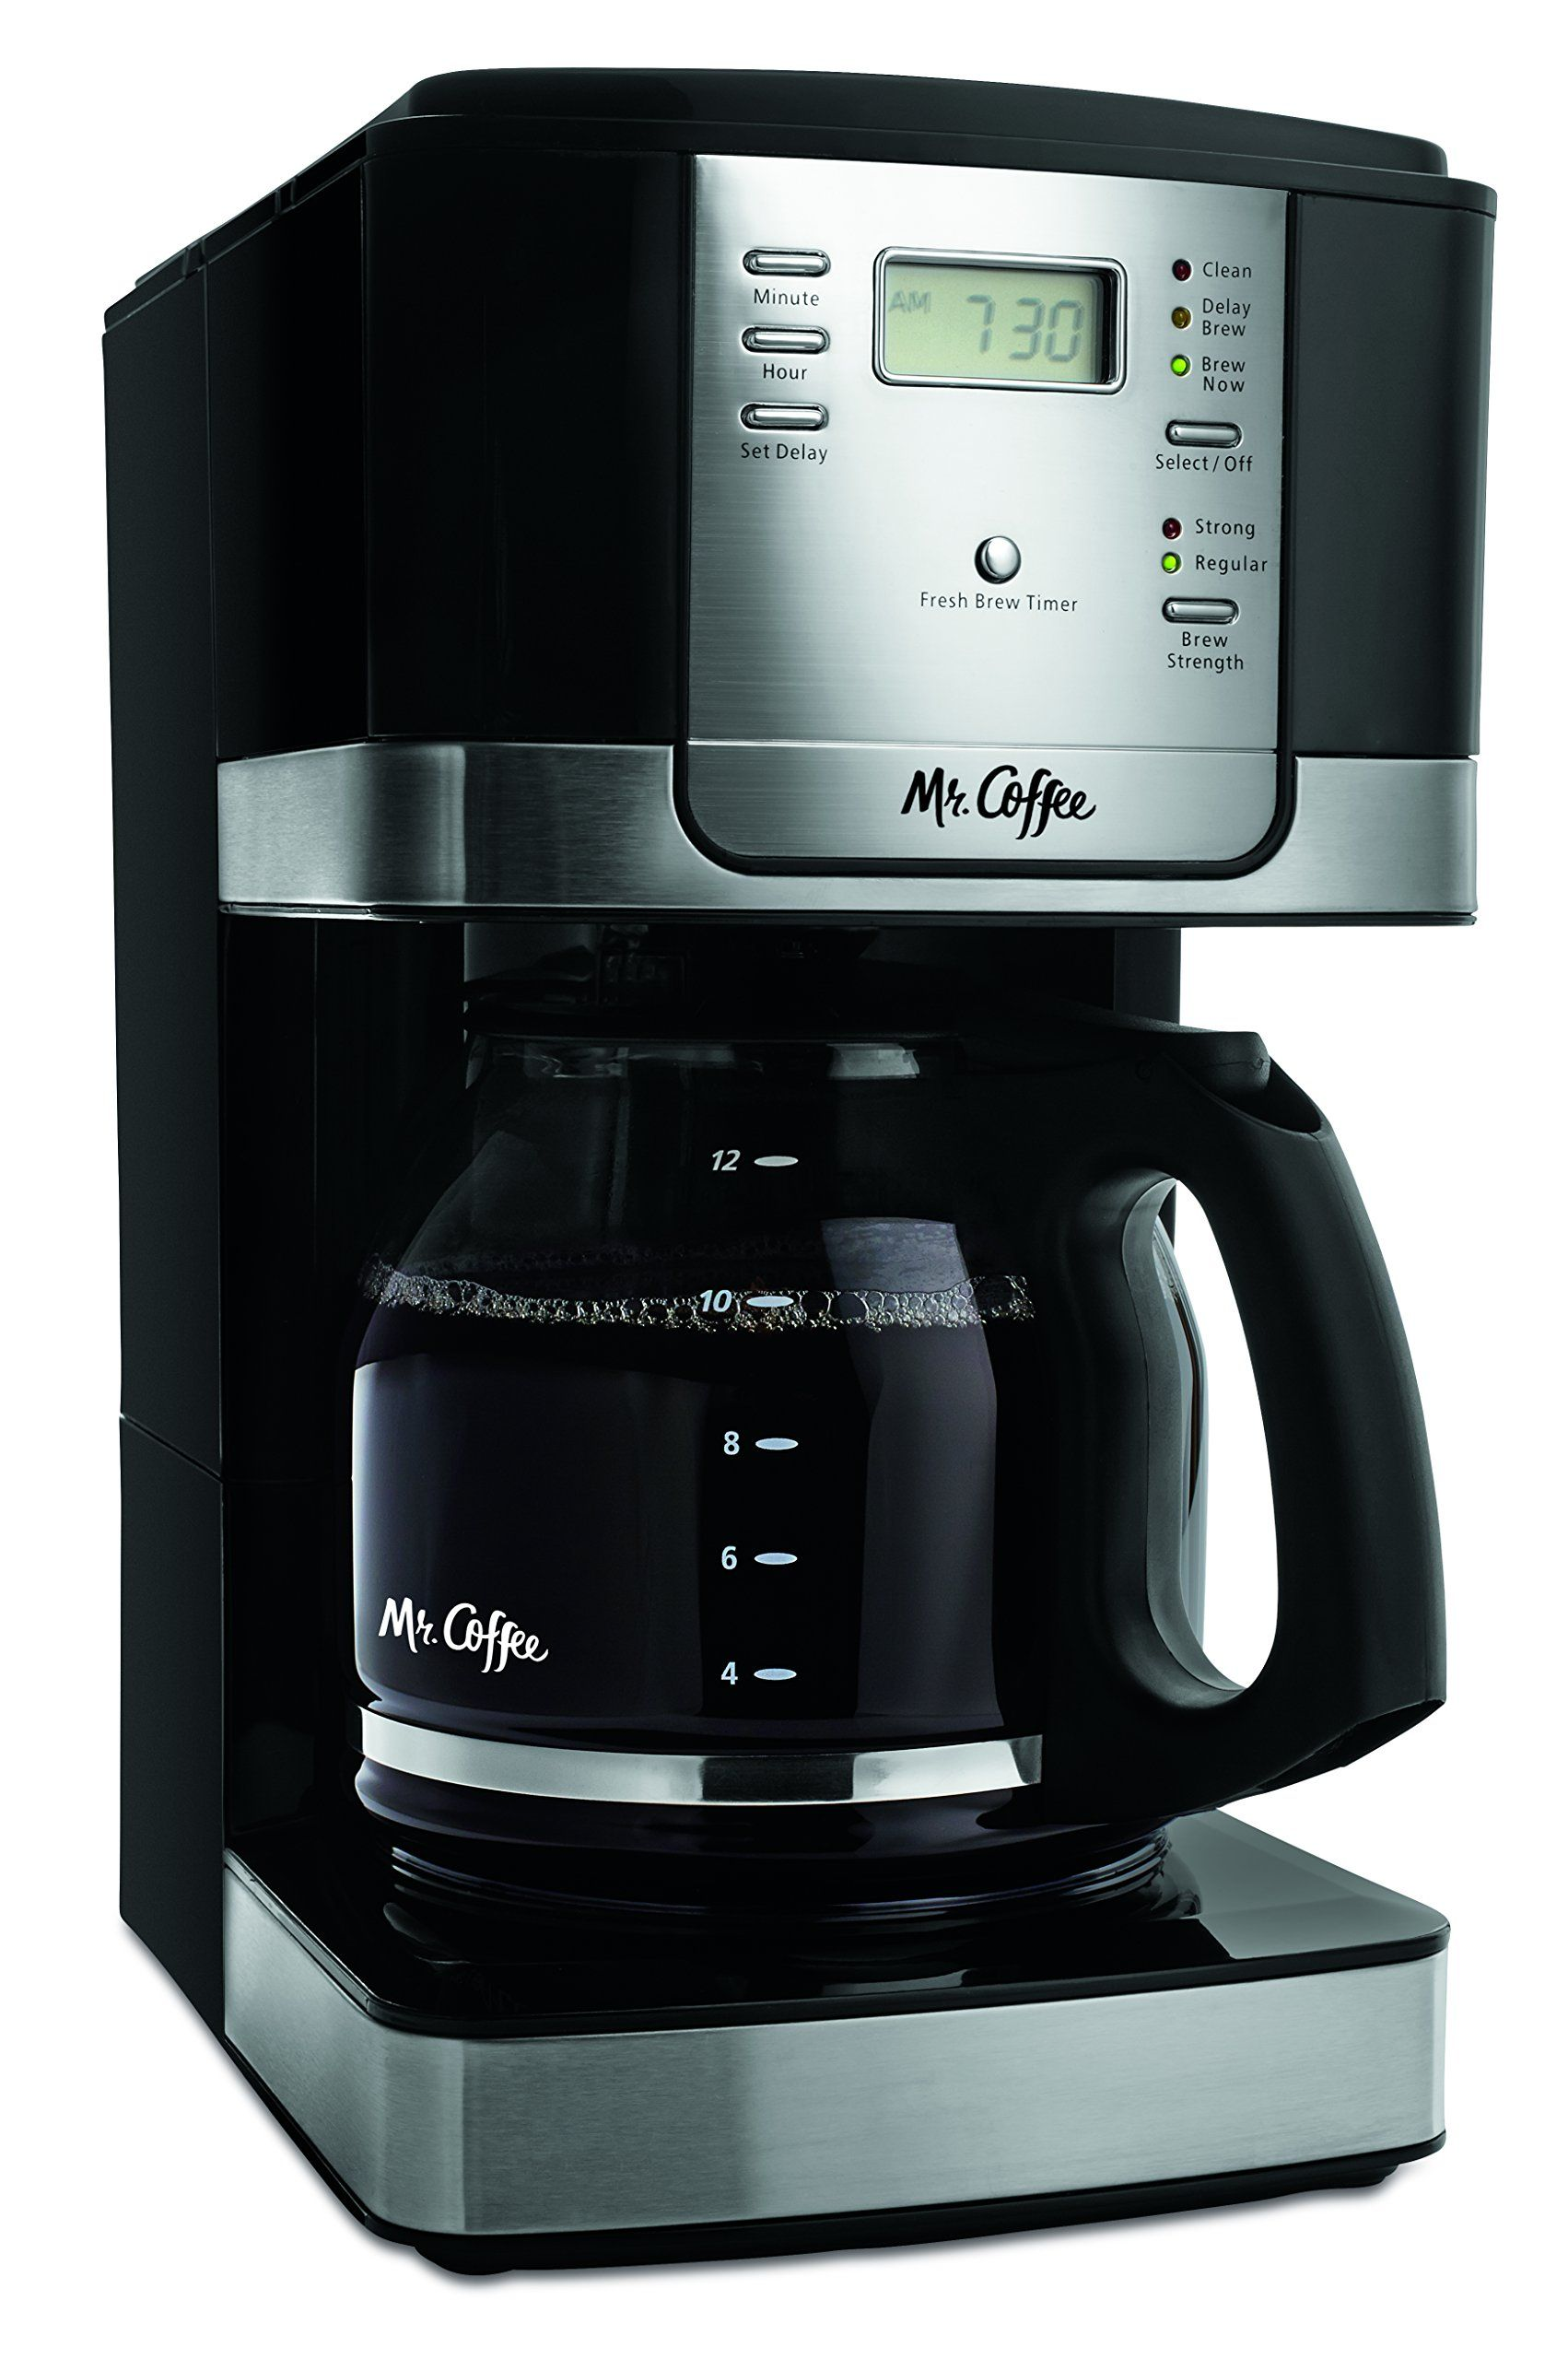 Mr Coffee Jwx27npa 12cup Progammable Coffeemaker Black You Can Find More Details By Visiting The Image Coffee Maker Best Coffee Maker Coffee Maker Reviews